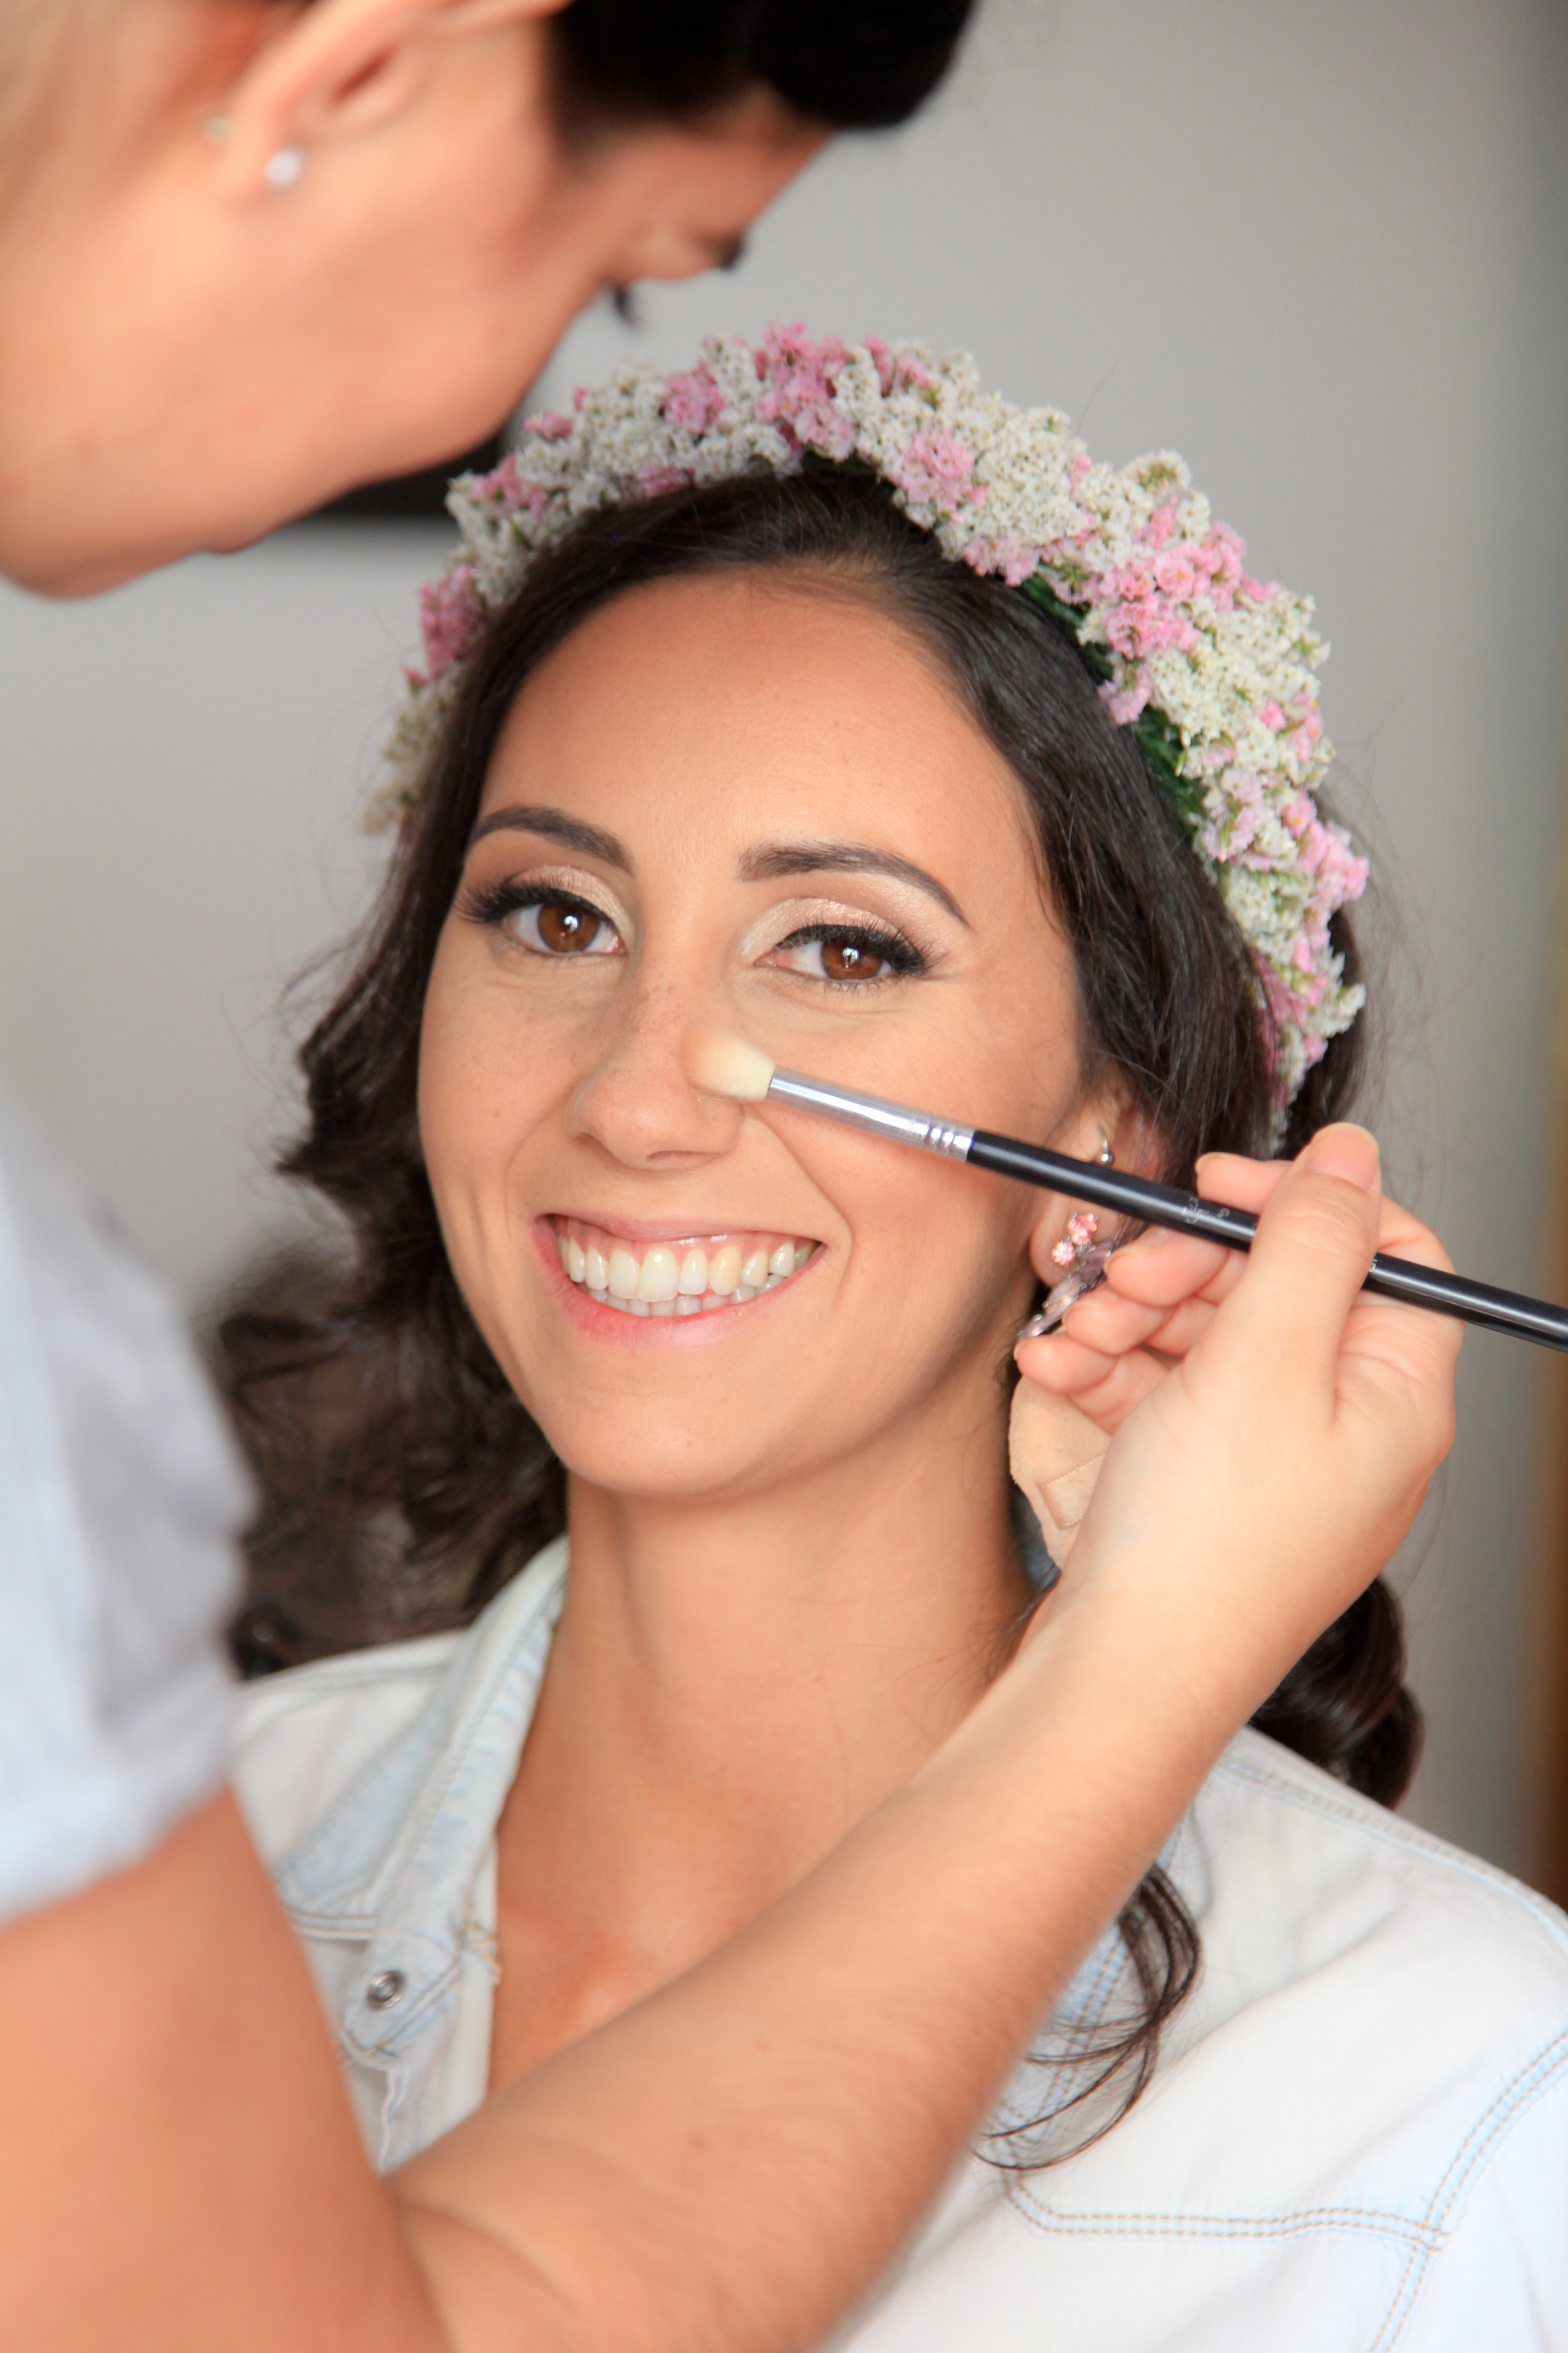 Make-Up & Photo Shoot Package.